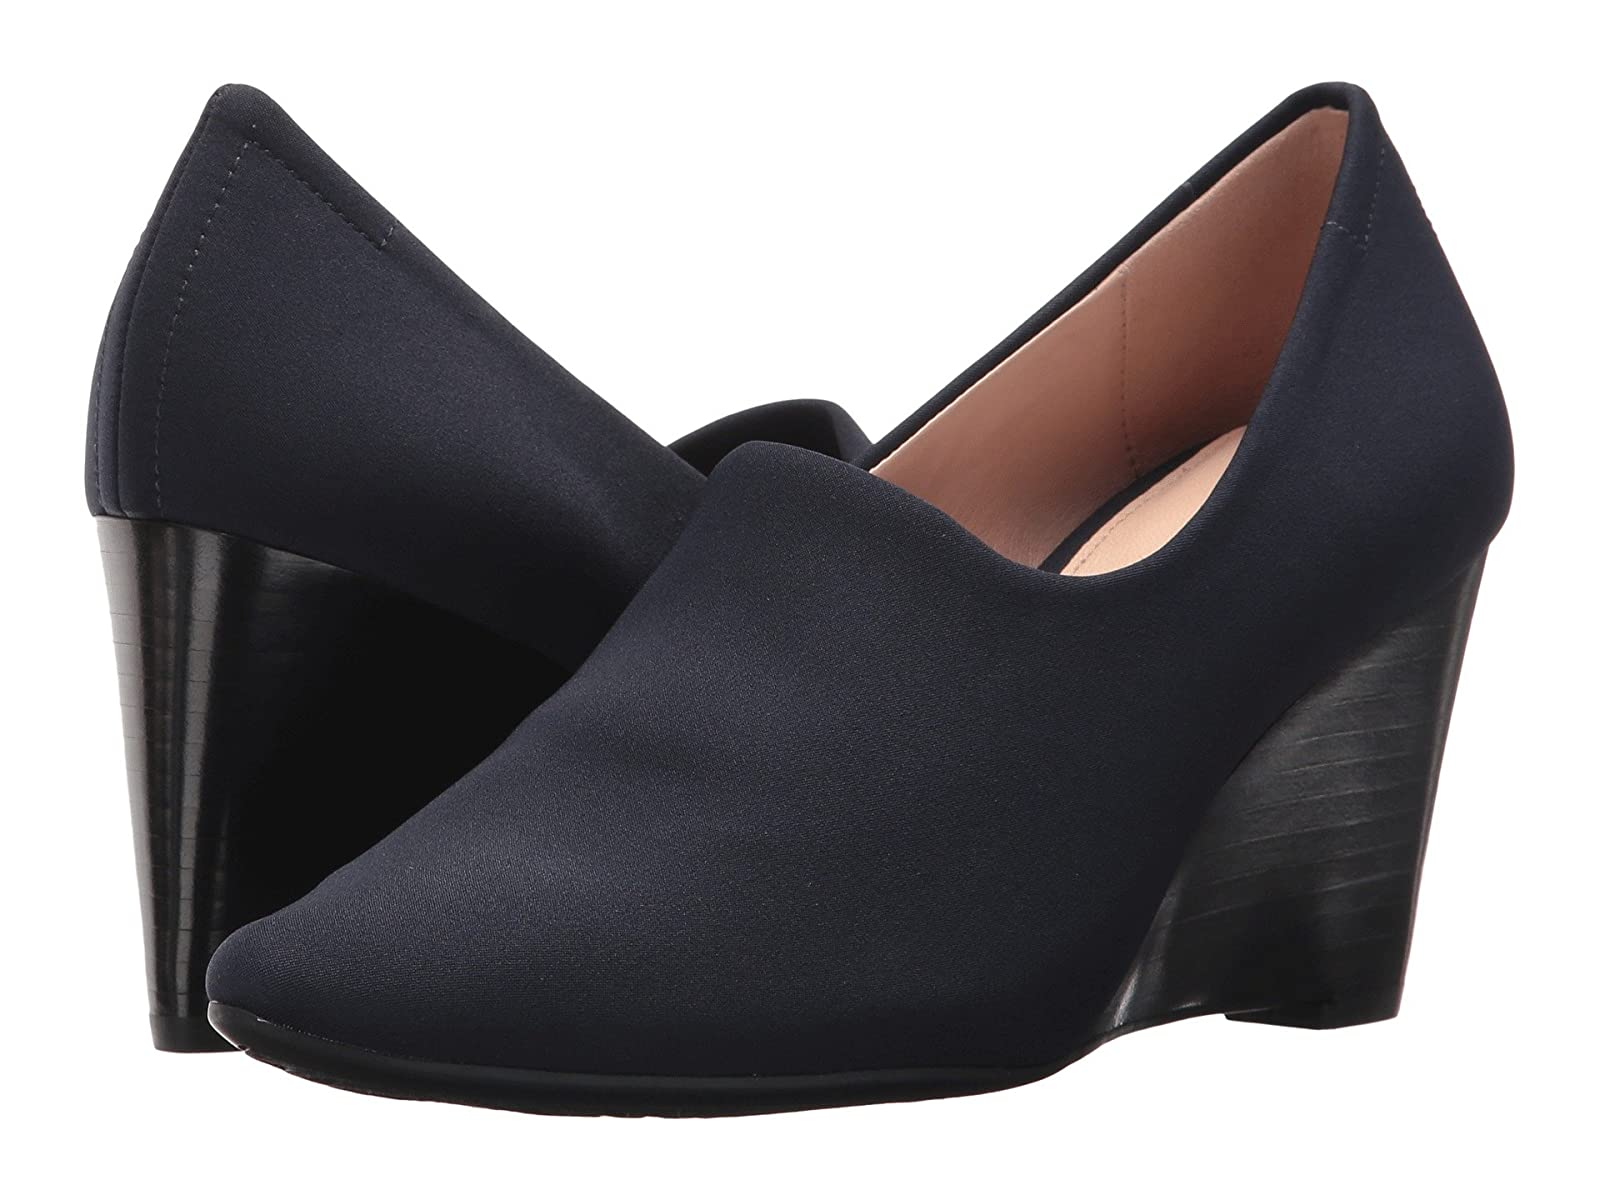 Taryn Rose YvonneAtmospheric grades have affordable shoes